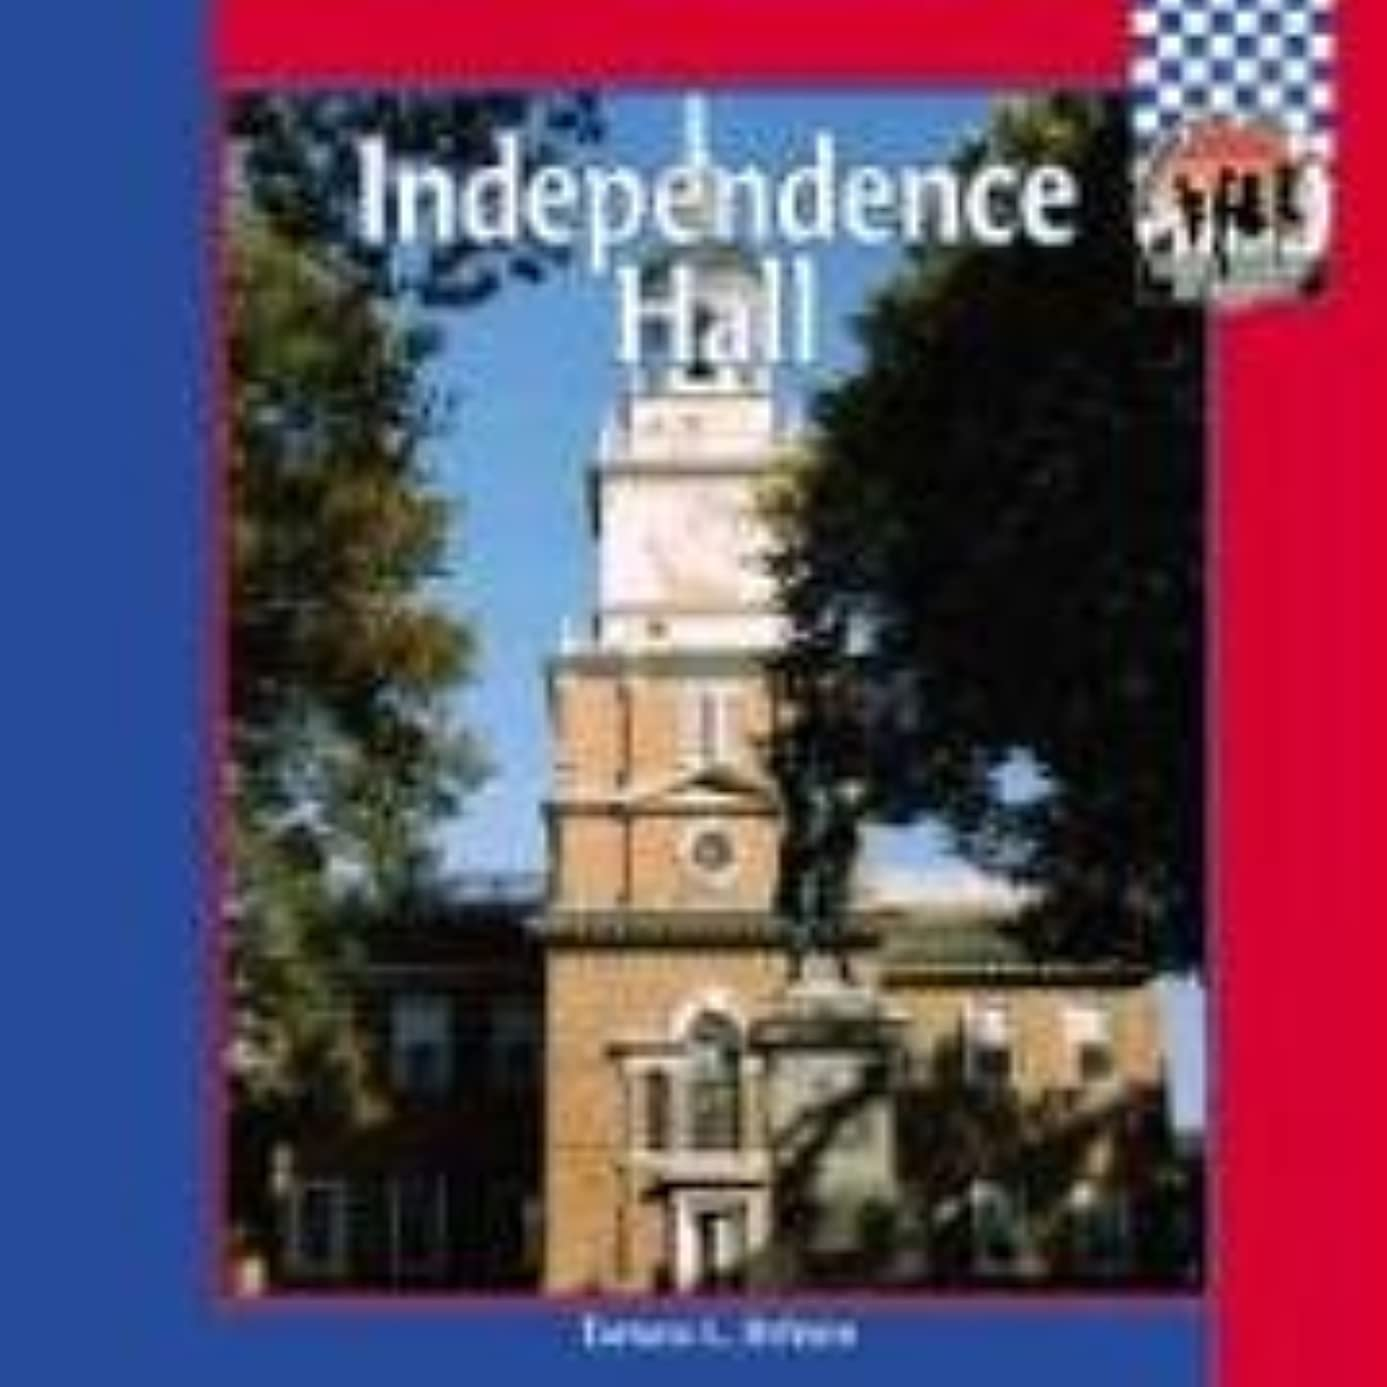 Independence Hall (Checkerboard Symbols, Landmarks and Monuments)